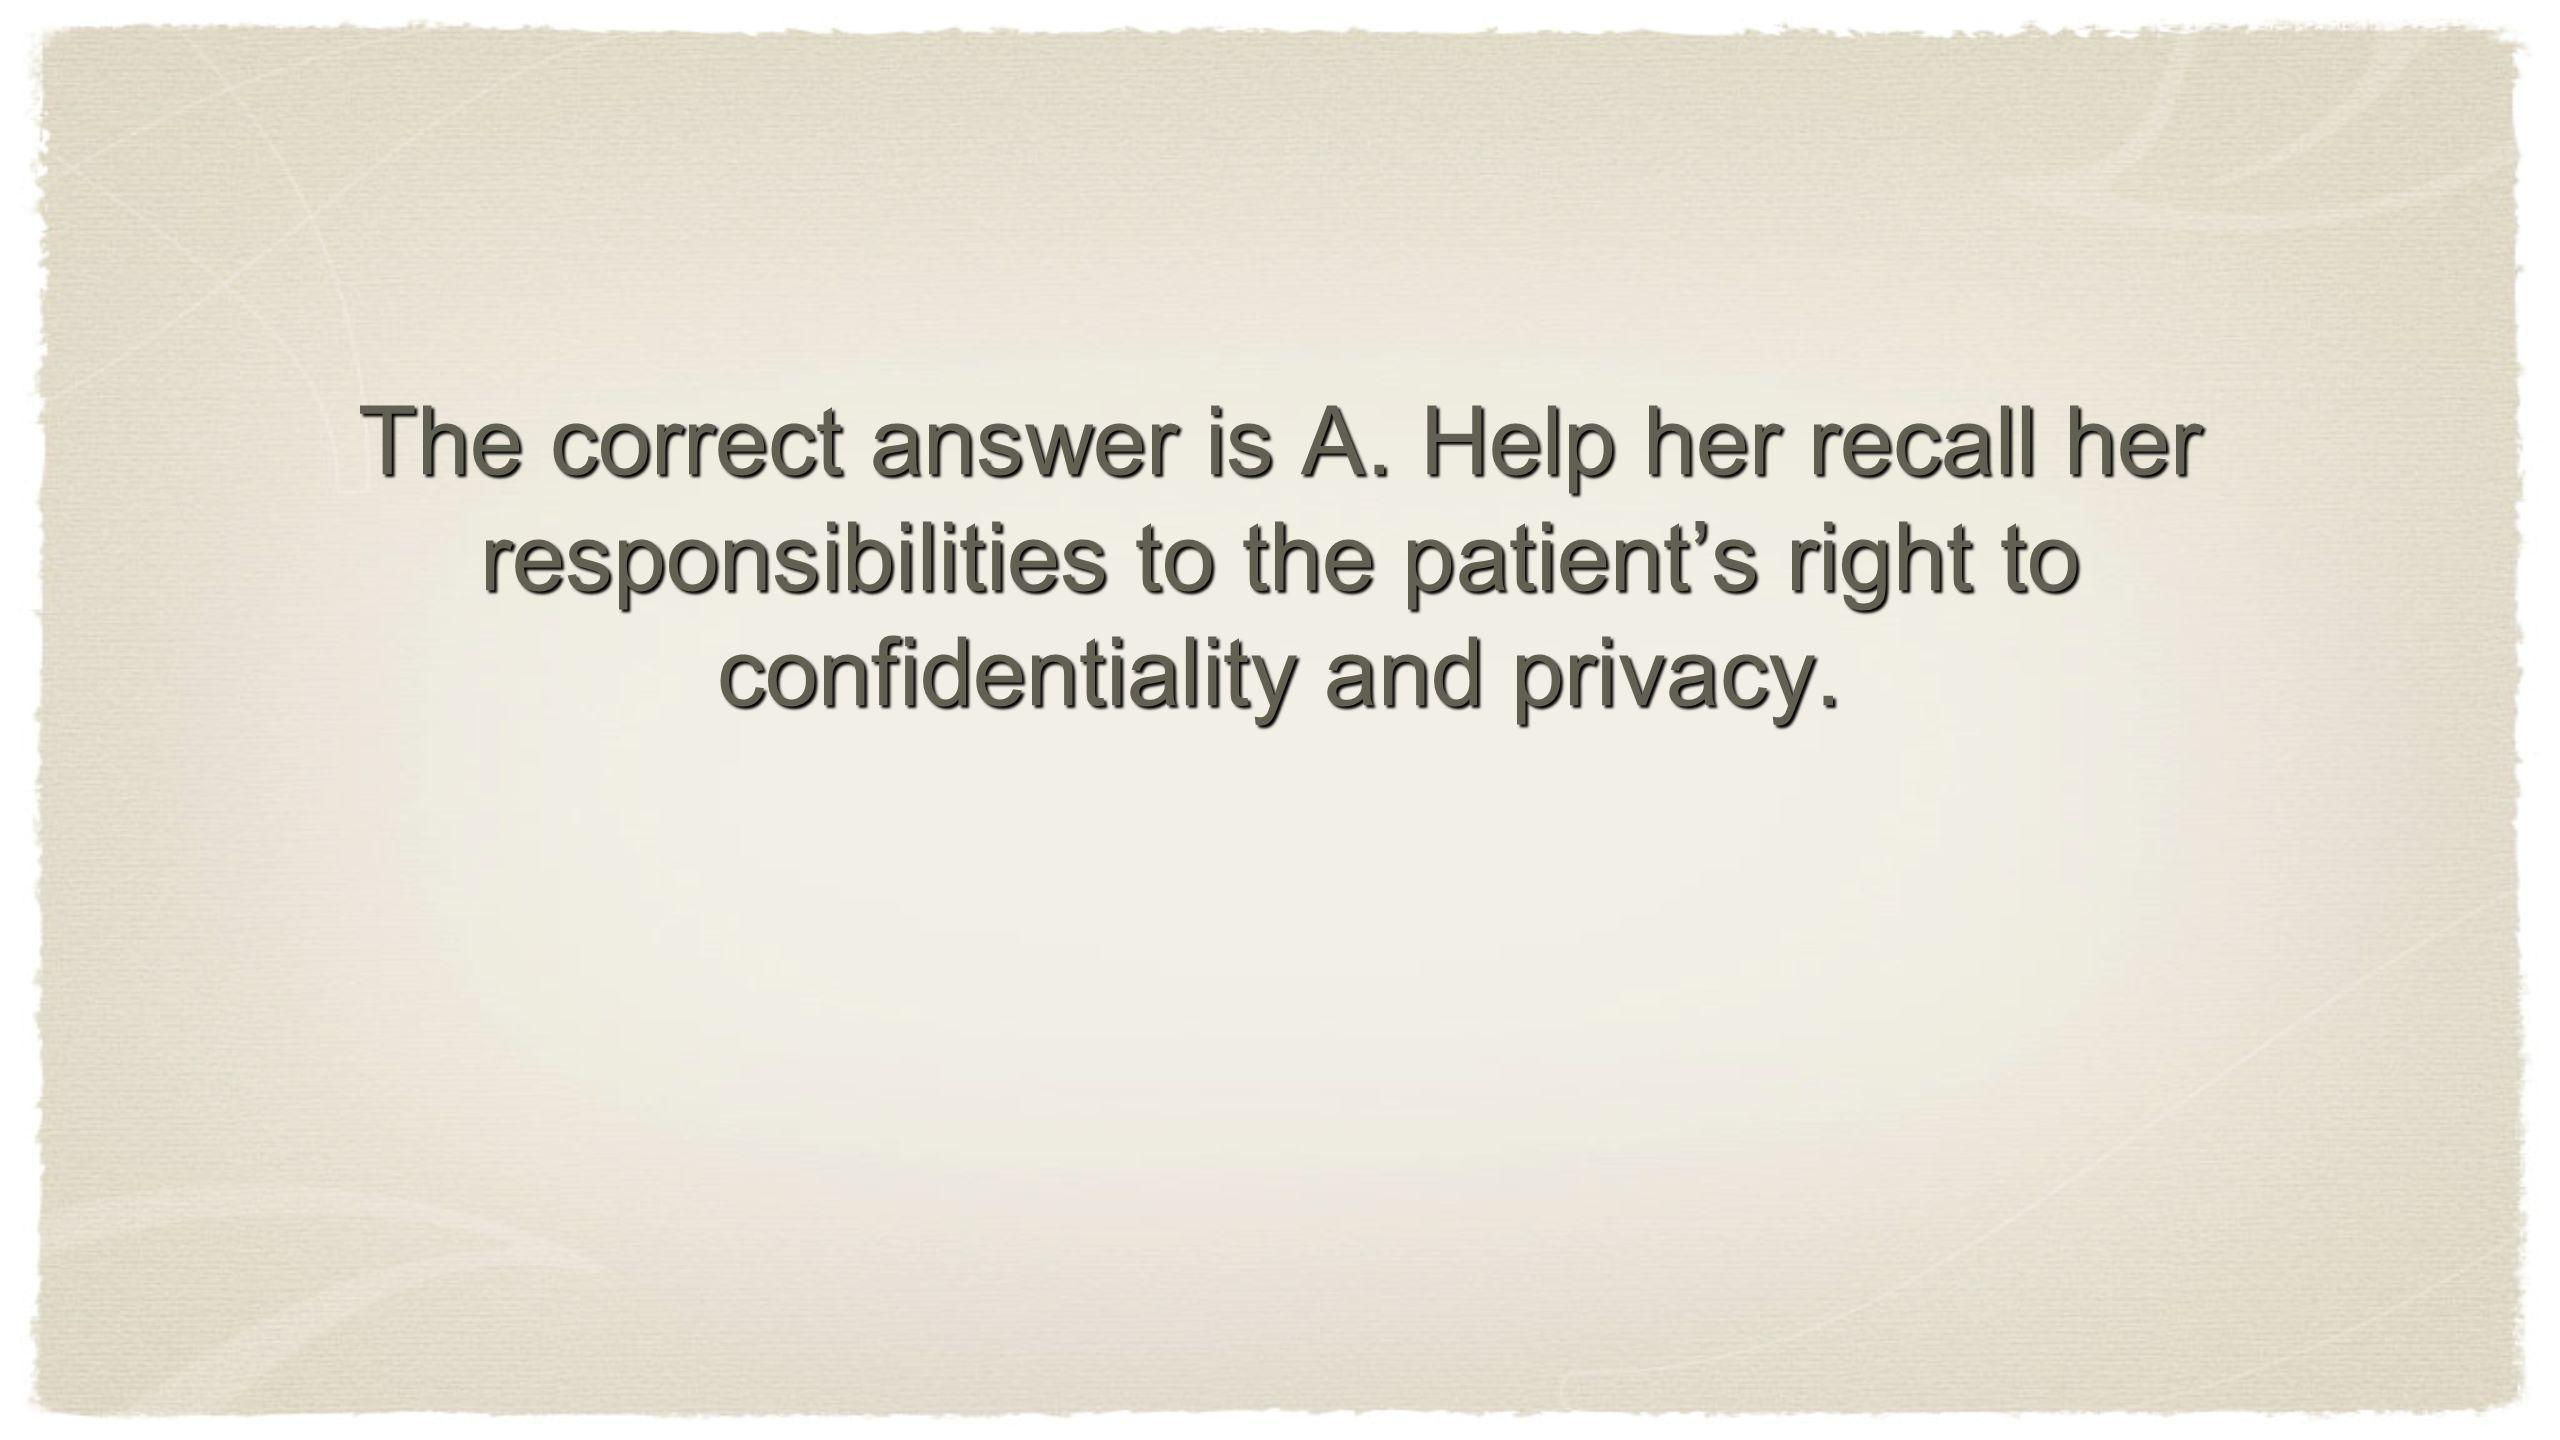 The correct answer is A. Help her recall her responsibilities to the patients right to confidentiality and privacy.